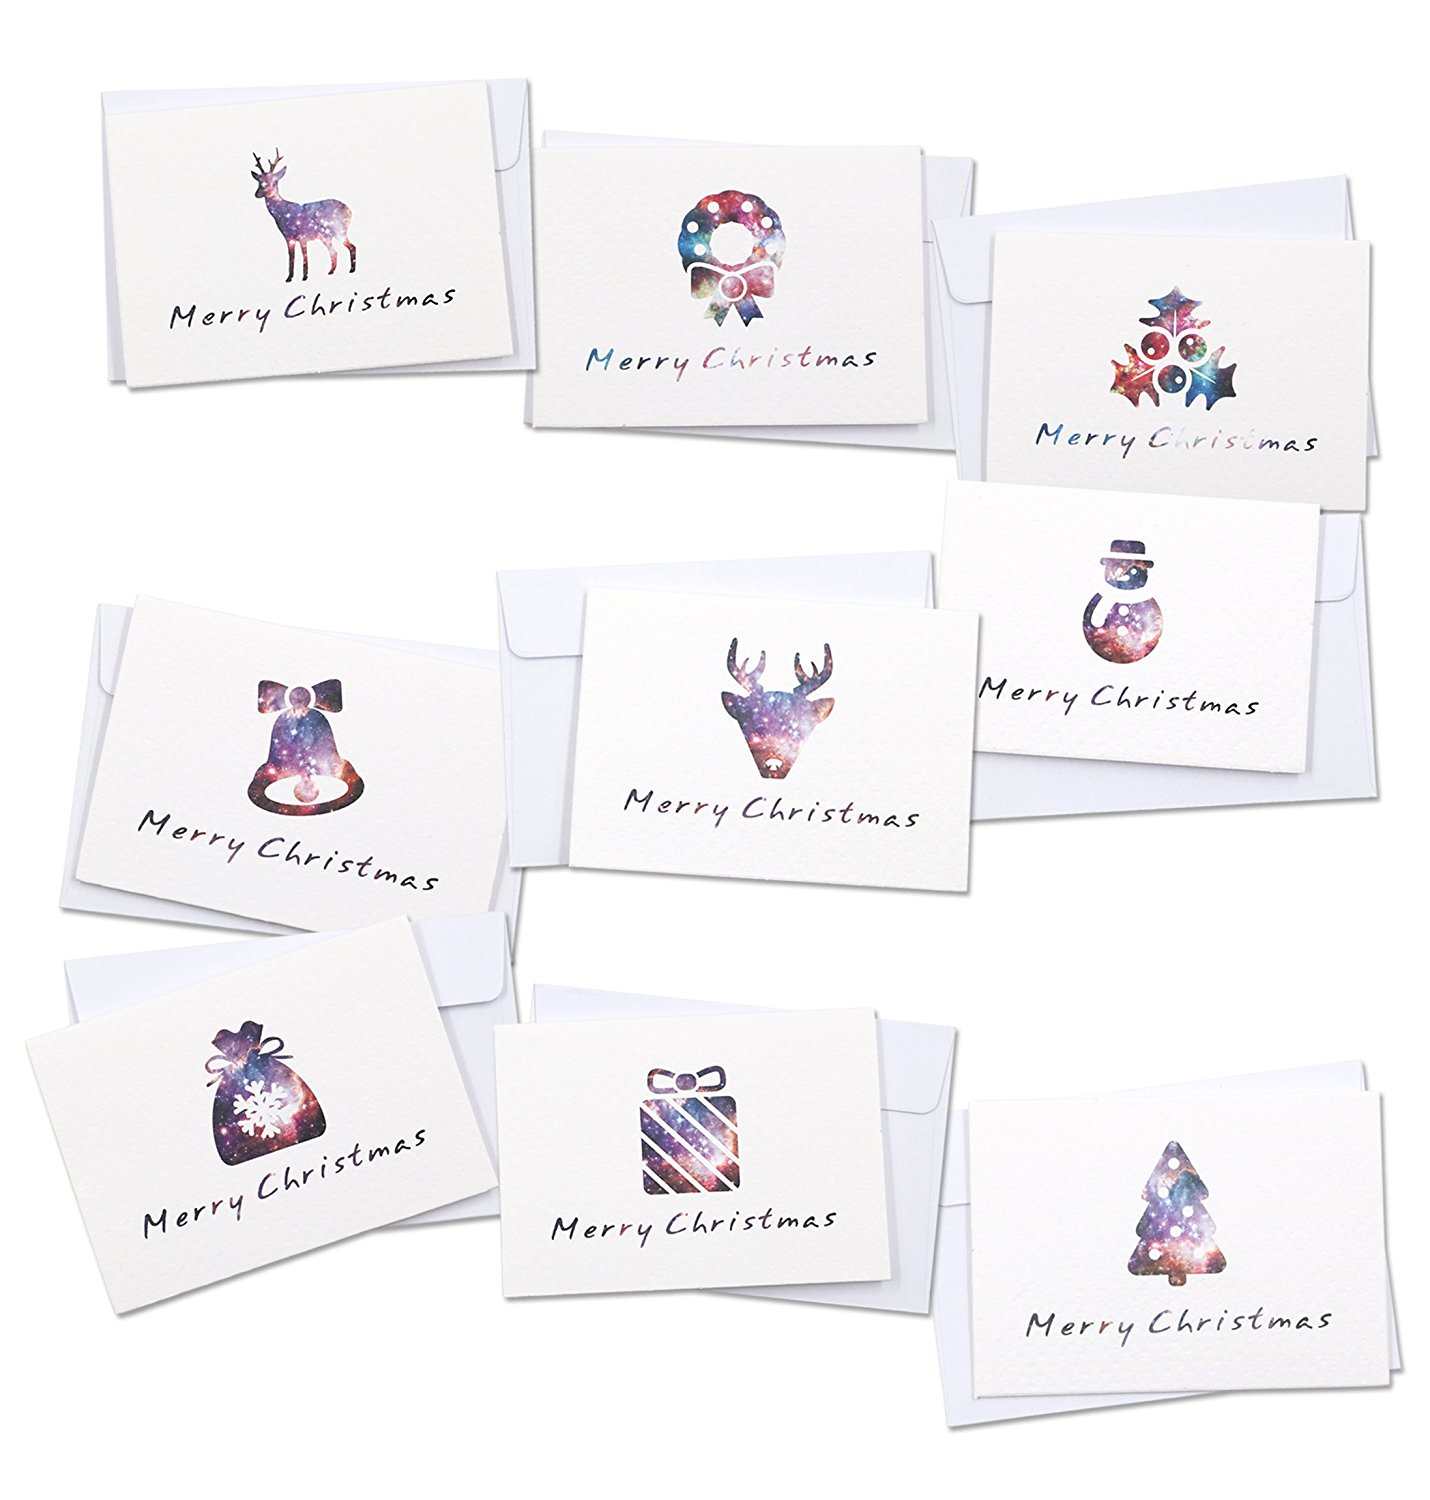 Cheap merry christmas korea find merry christmas korea deals on get quotations merry christmas greeting cards alxcd 18 pcs foldable small size 3375 2375 m4hsunfo